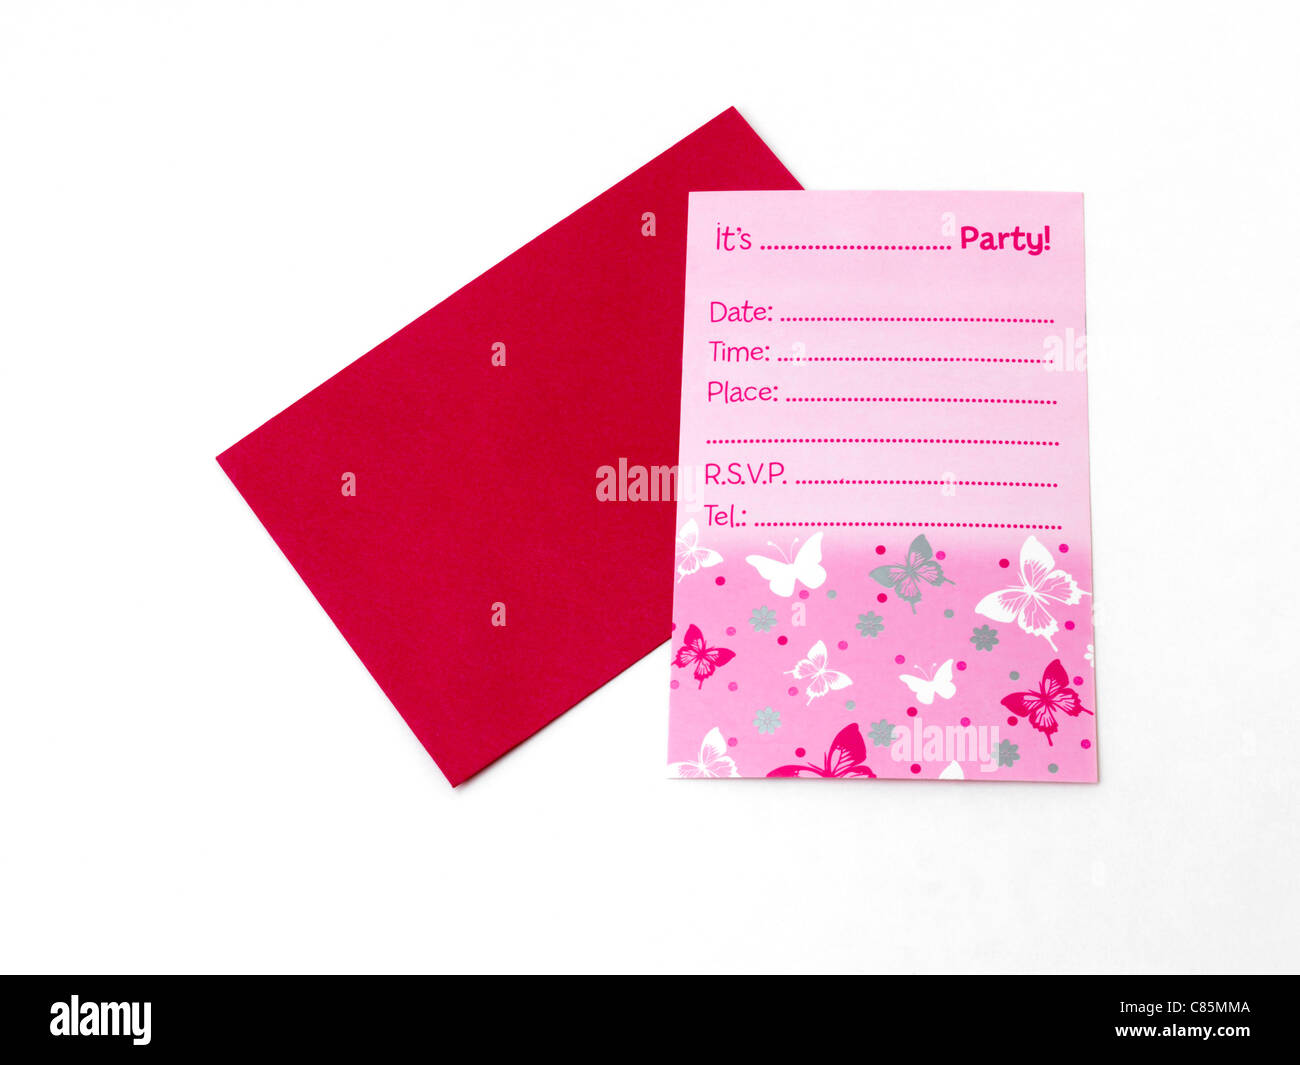 Pink Party Invitation With Red Envelope - Stock Image